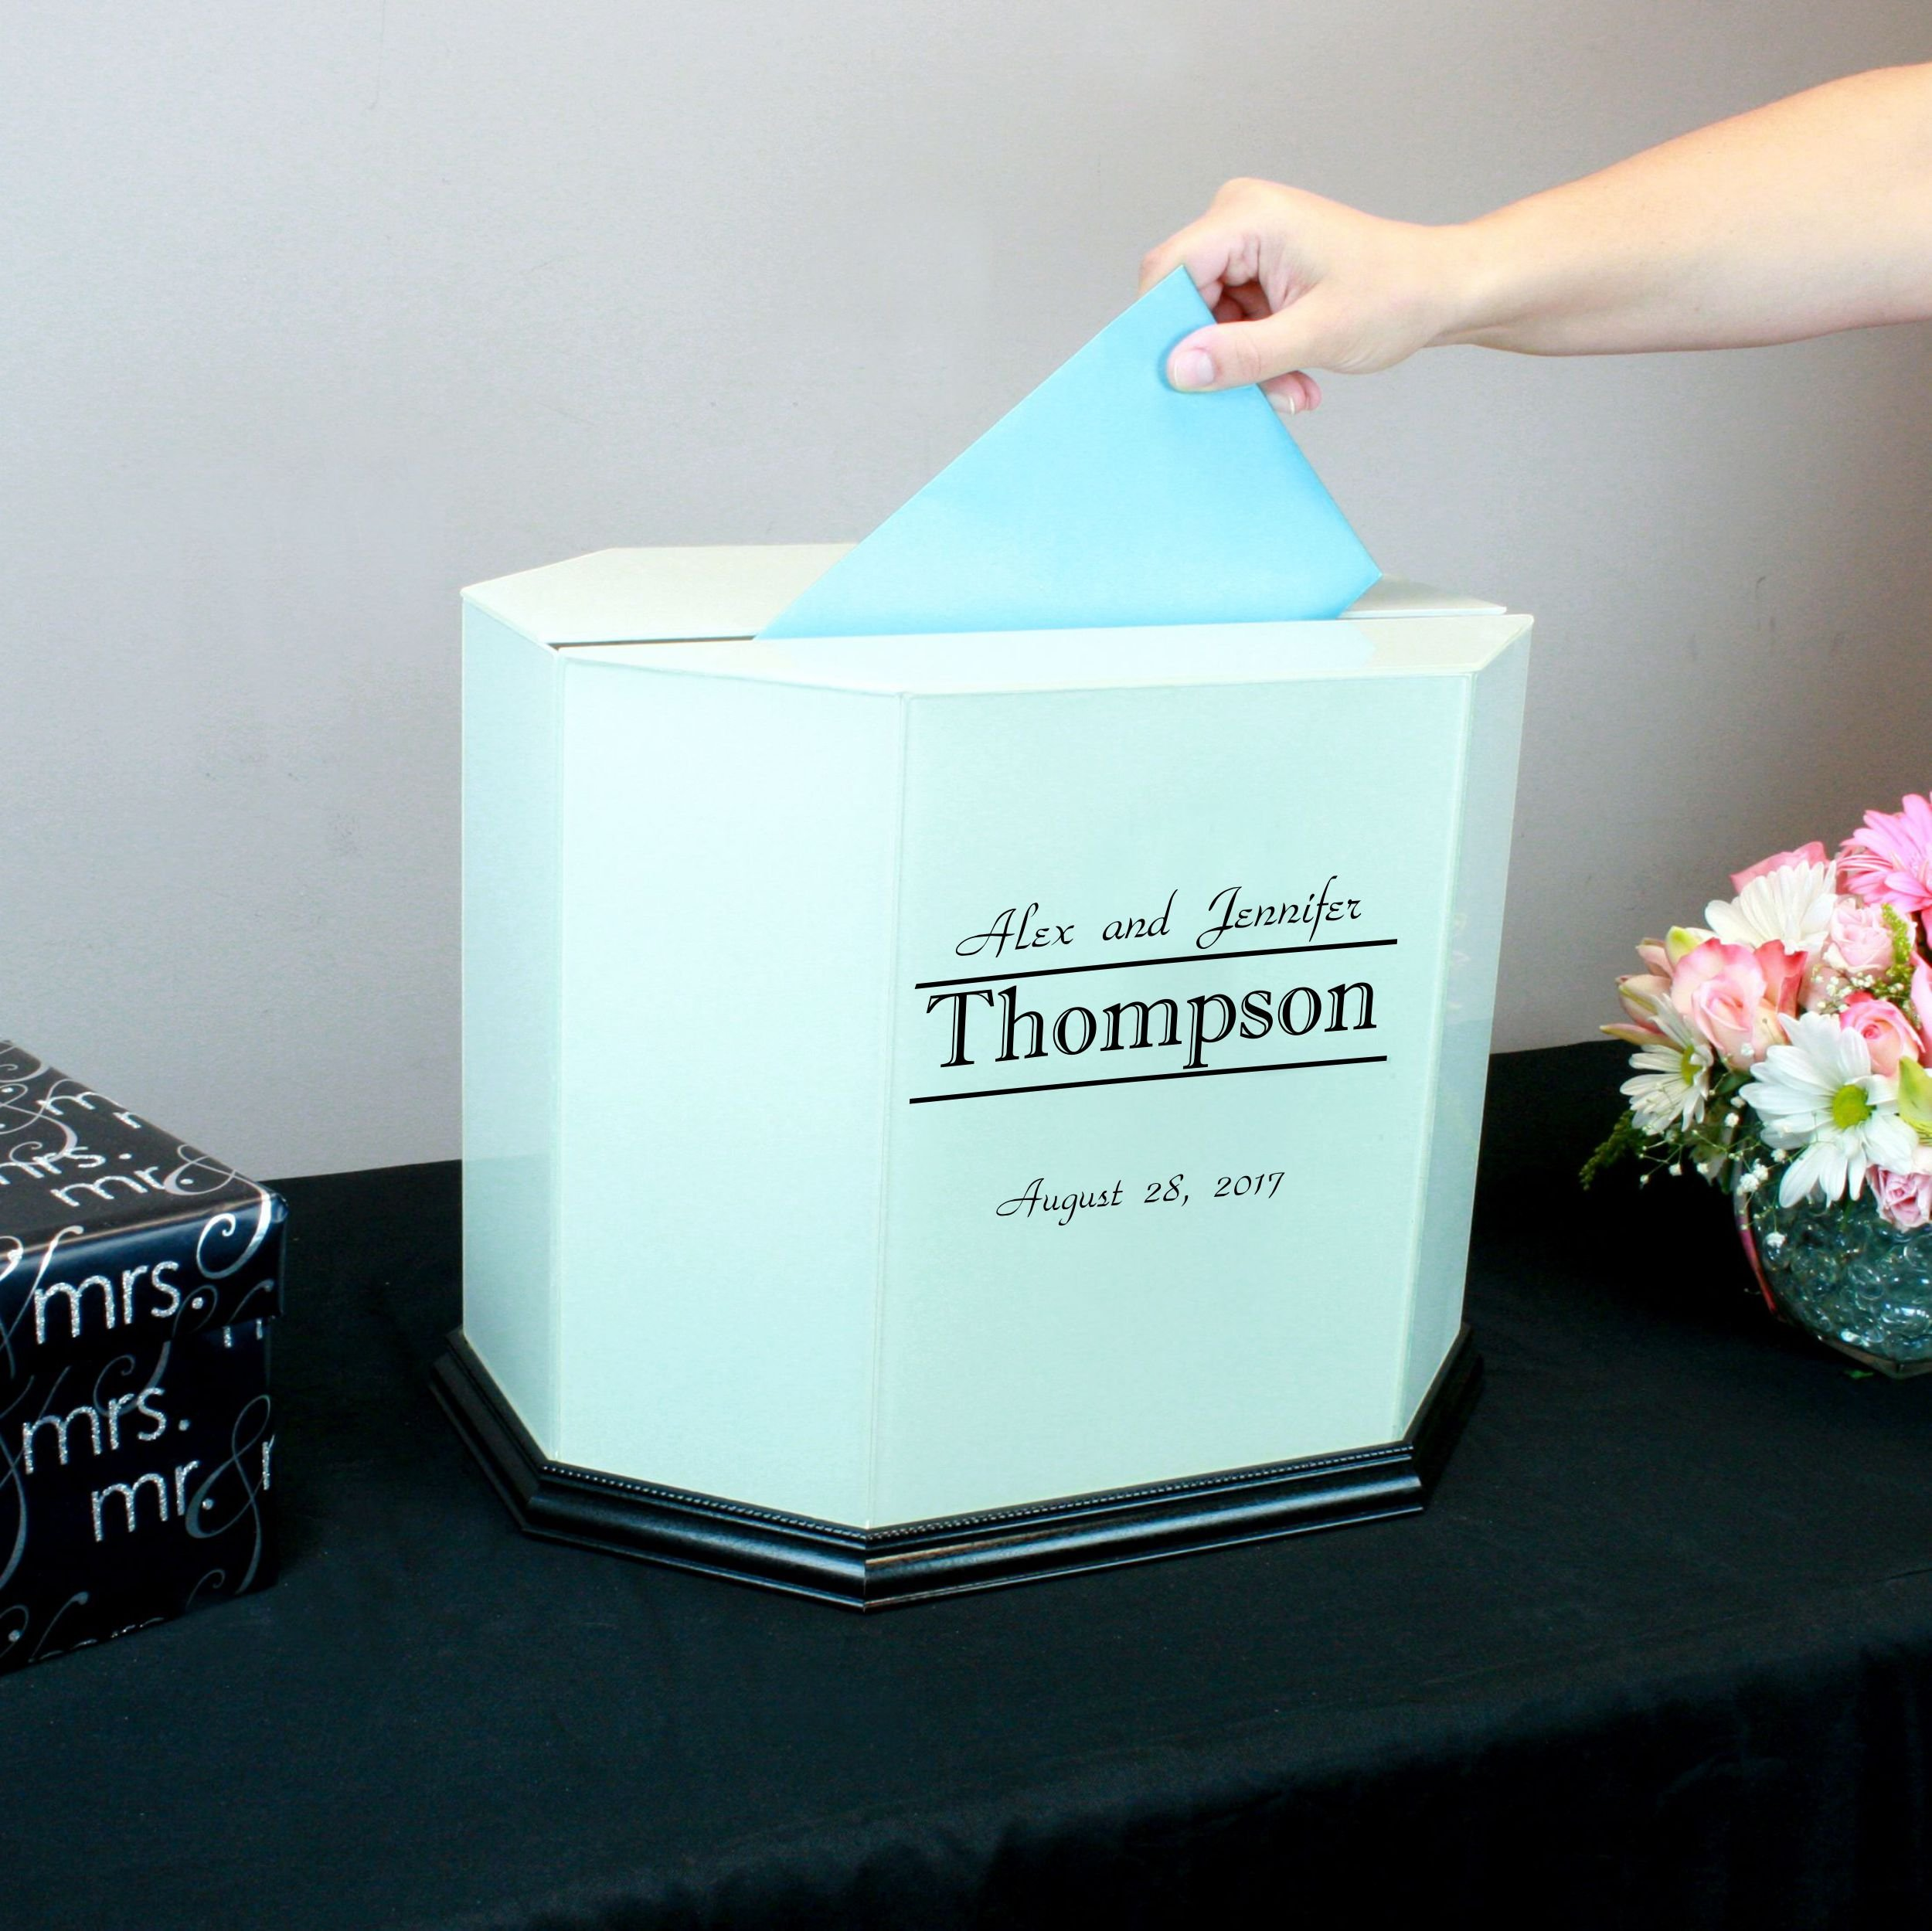 Personalized Wedding Card Box White Glass with Black Trim by Perfect Cases